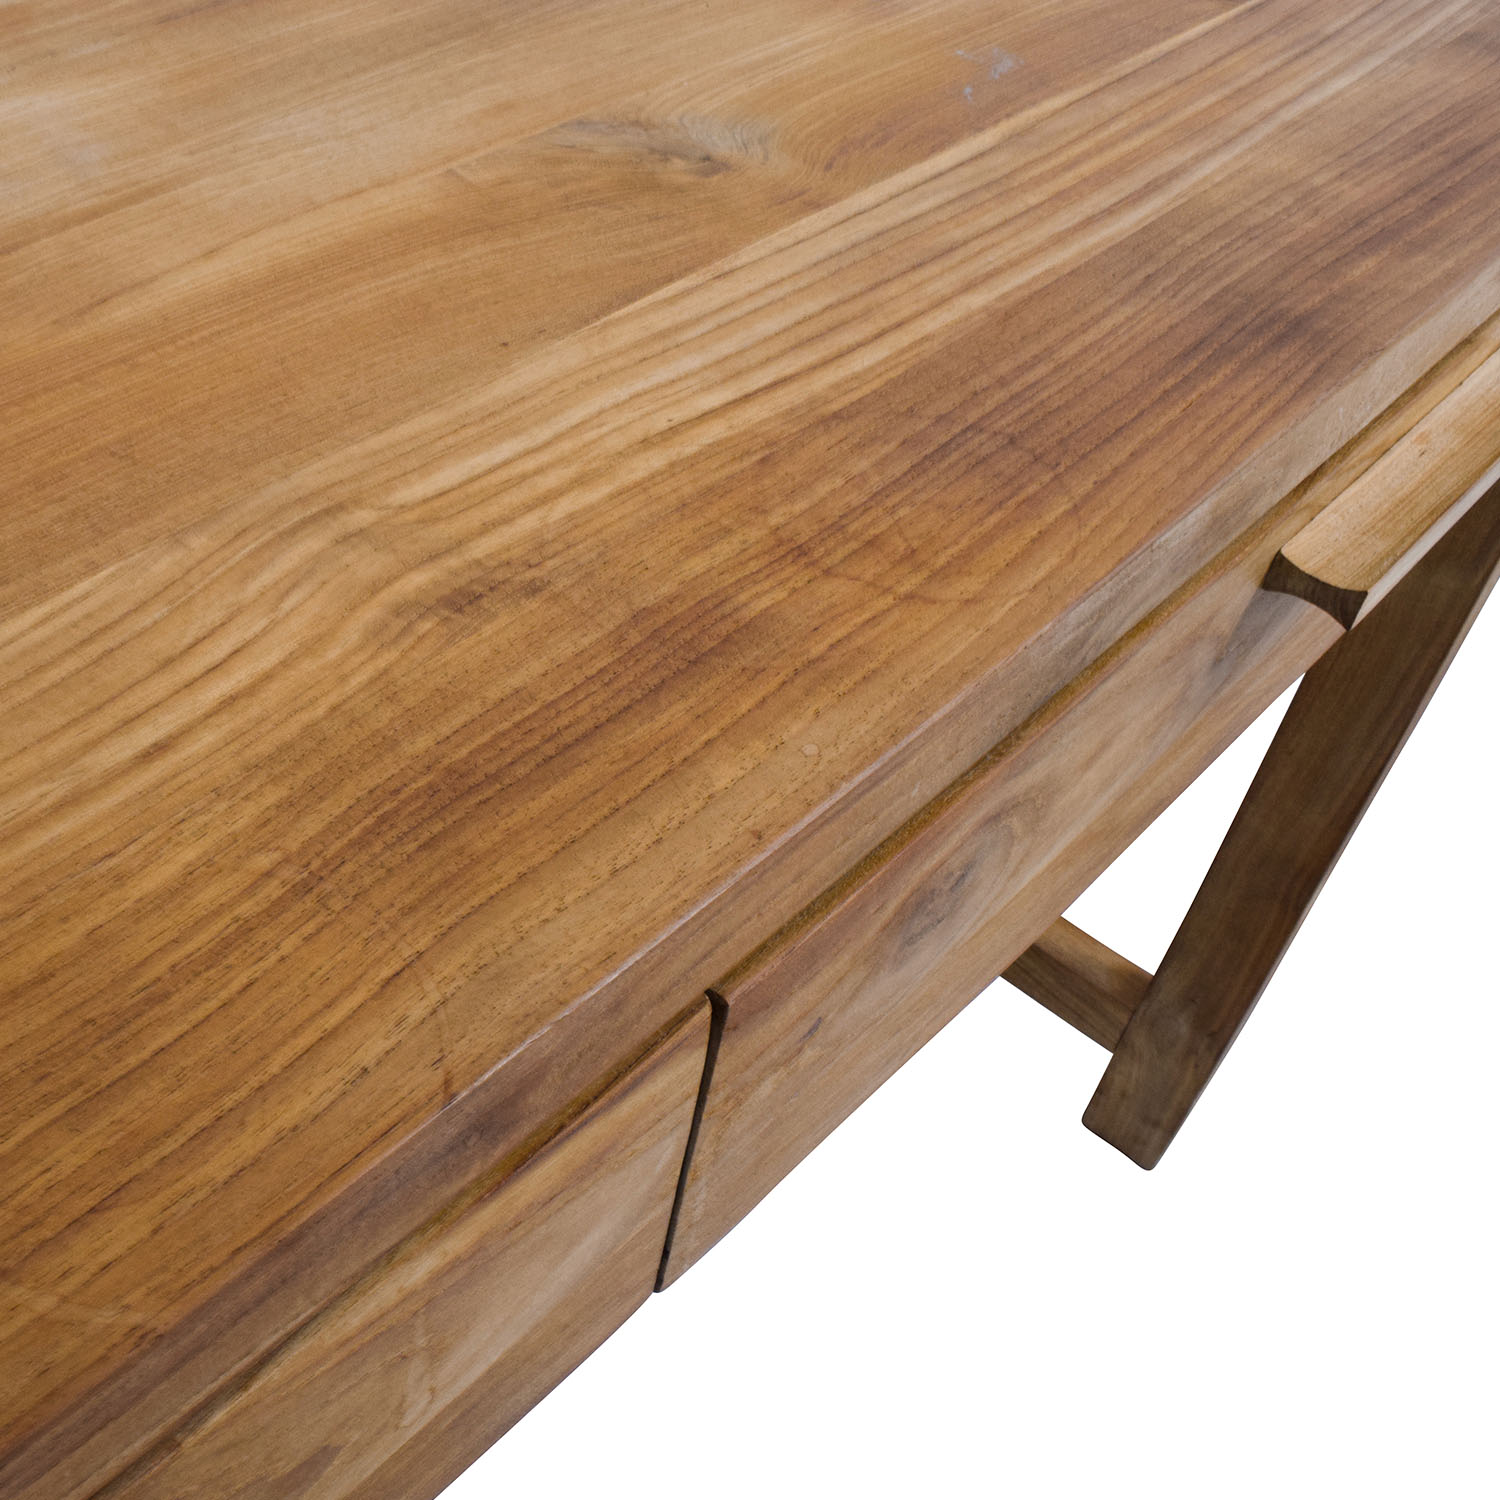 67% OFF Room and Board Room & Board Two Drawer Teak Desk Tables